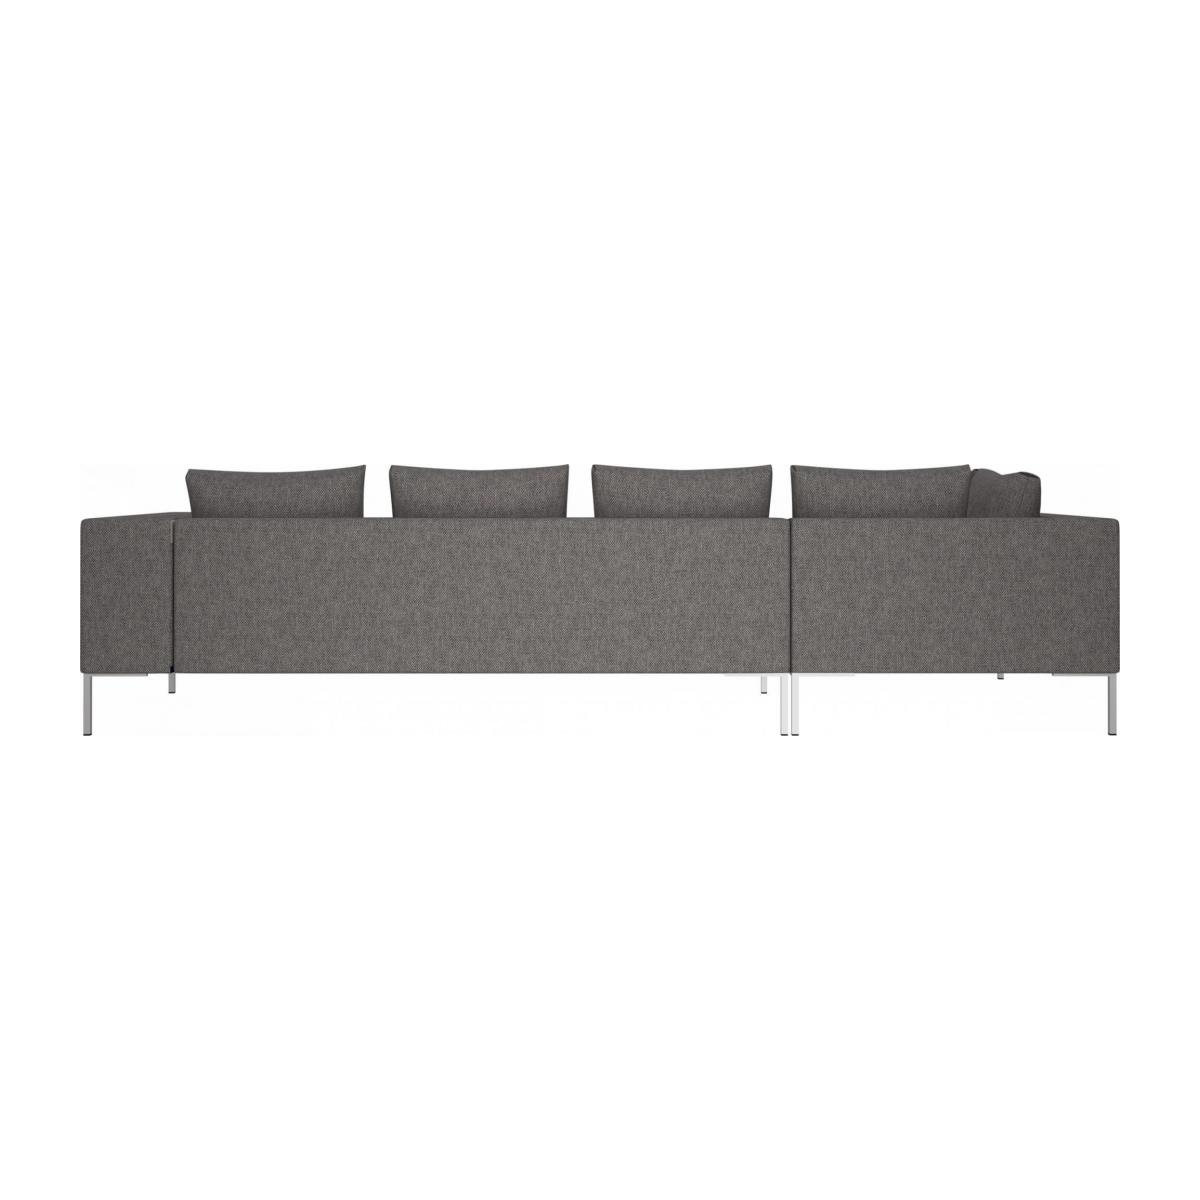 3 seater sofa with chaise longue on the left in Bellagio fabric, night black  n°3